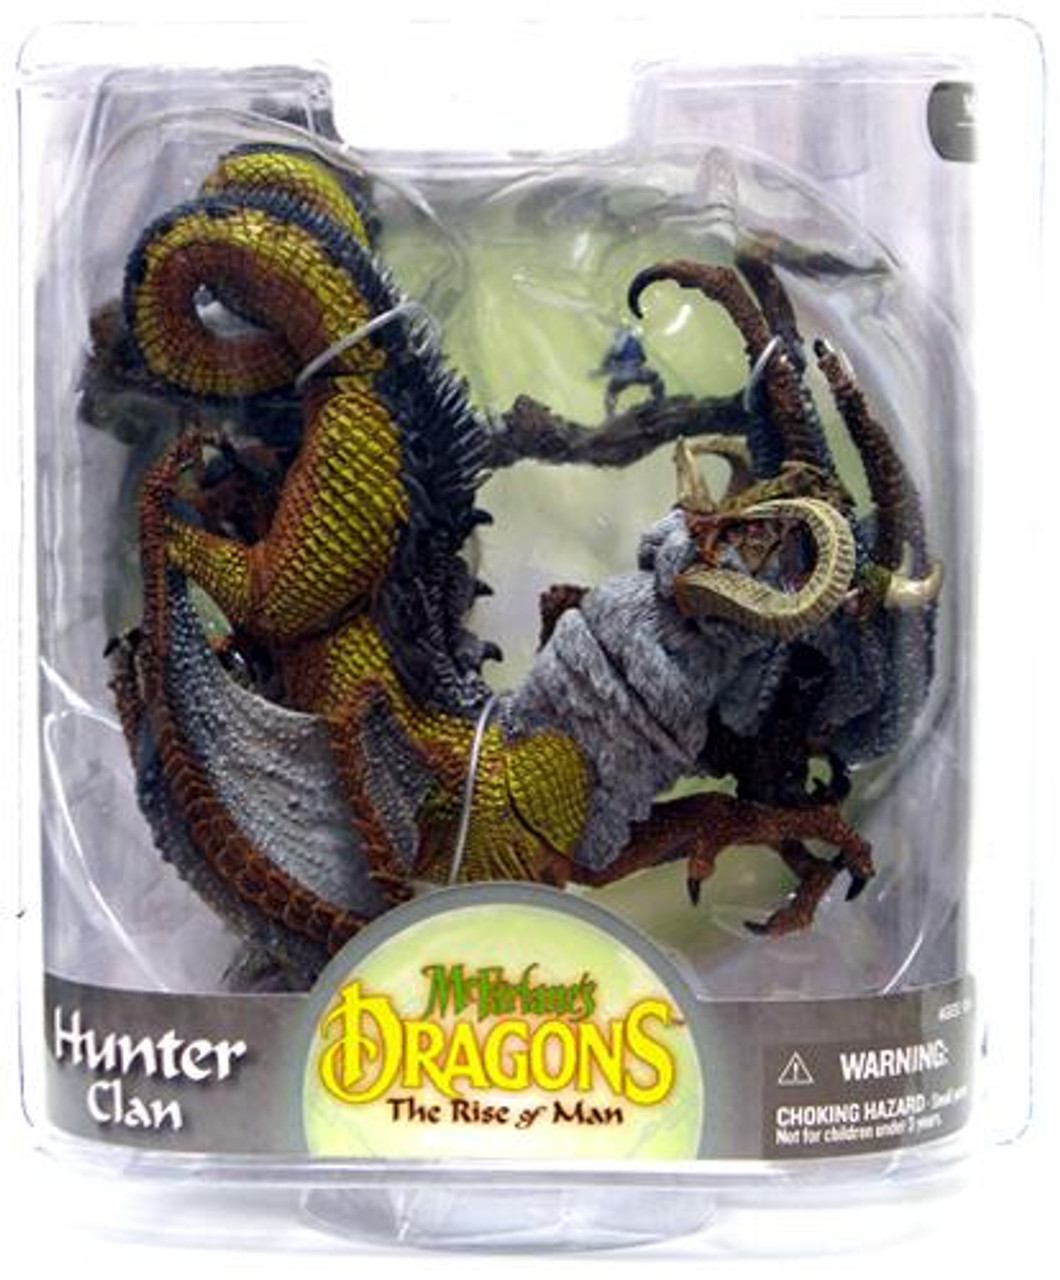 McFarlane Toys Dragons The Rise of Man Series 8 Hunter Clan 2 Action Figure